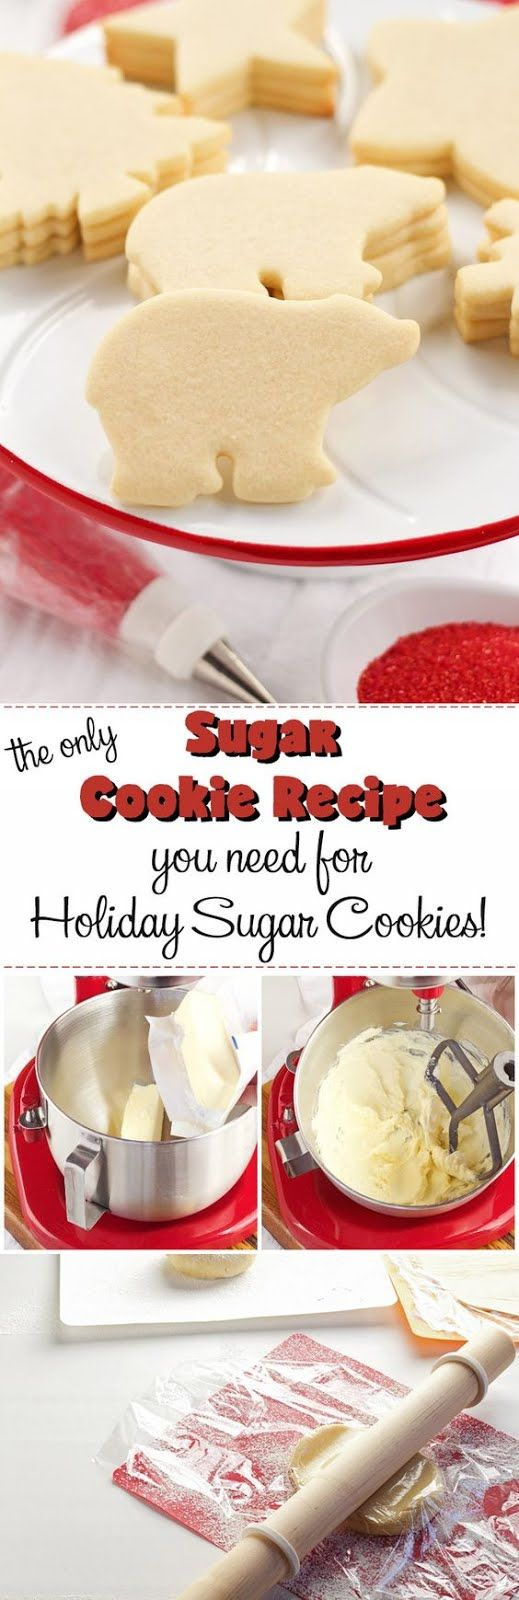 The ONLY Sugar Cookie Recipe You Will Need